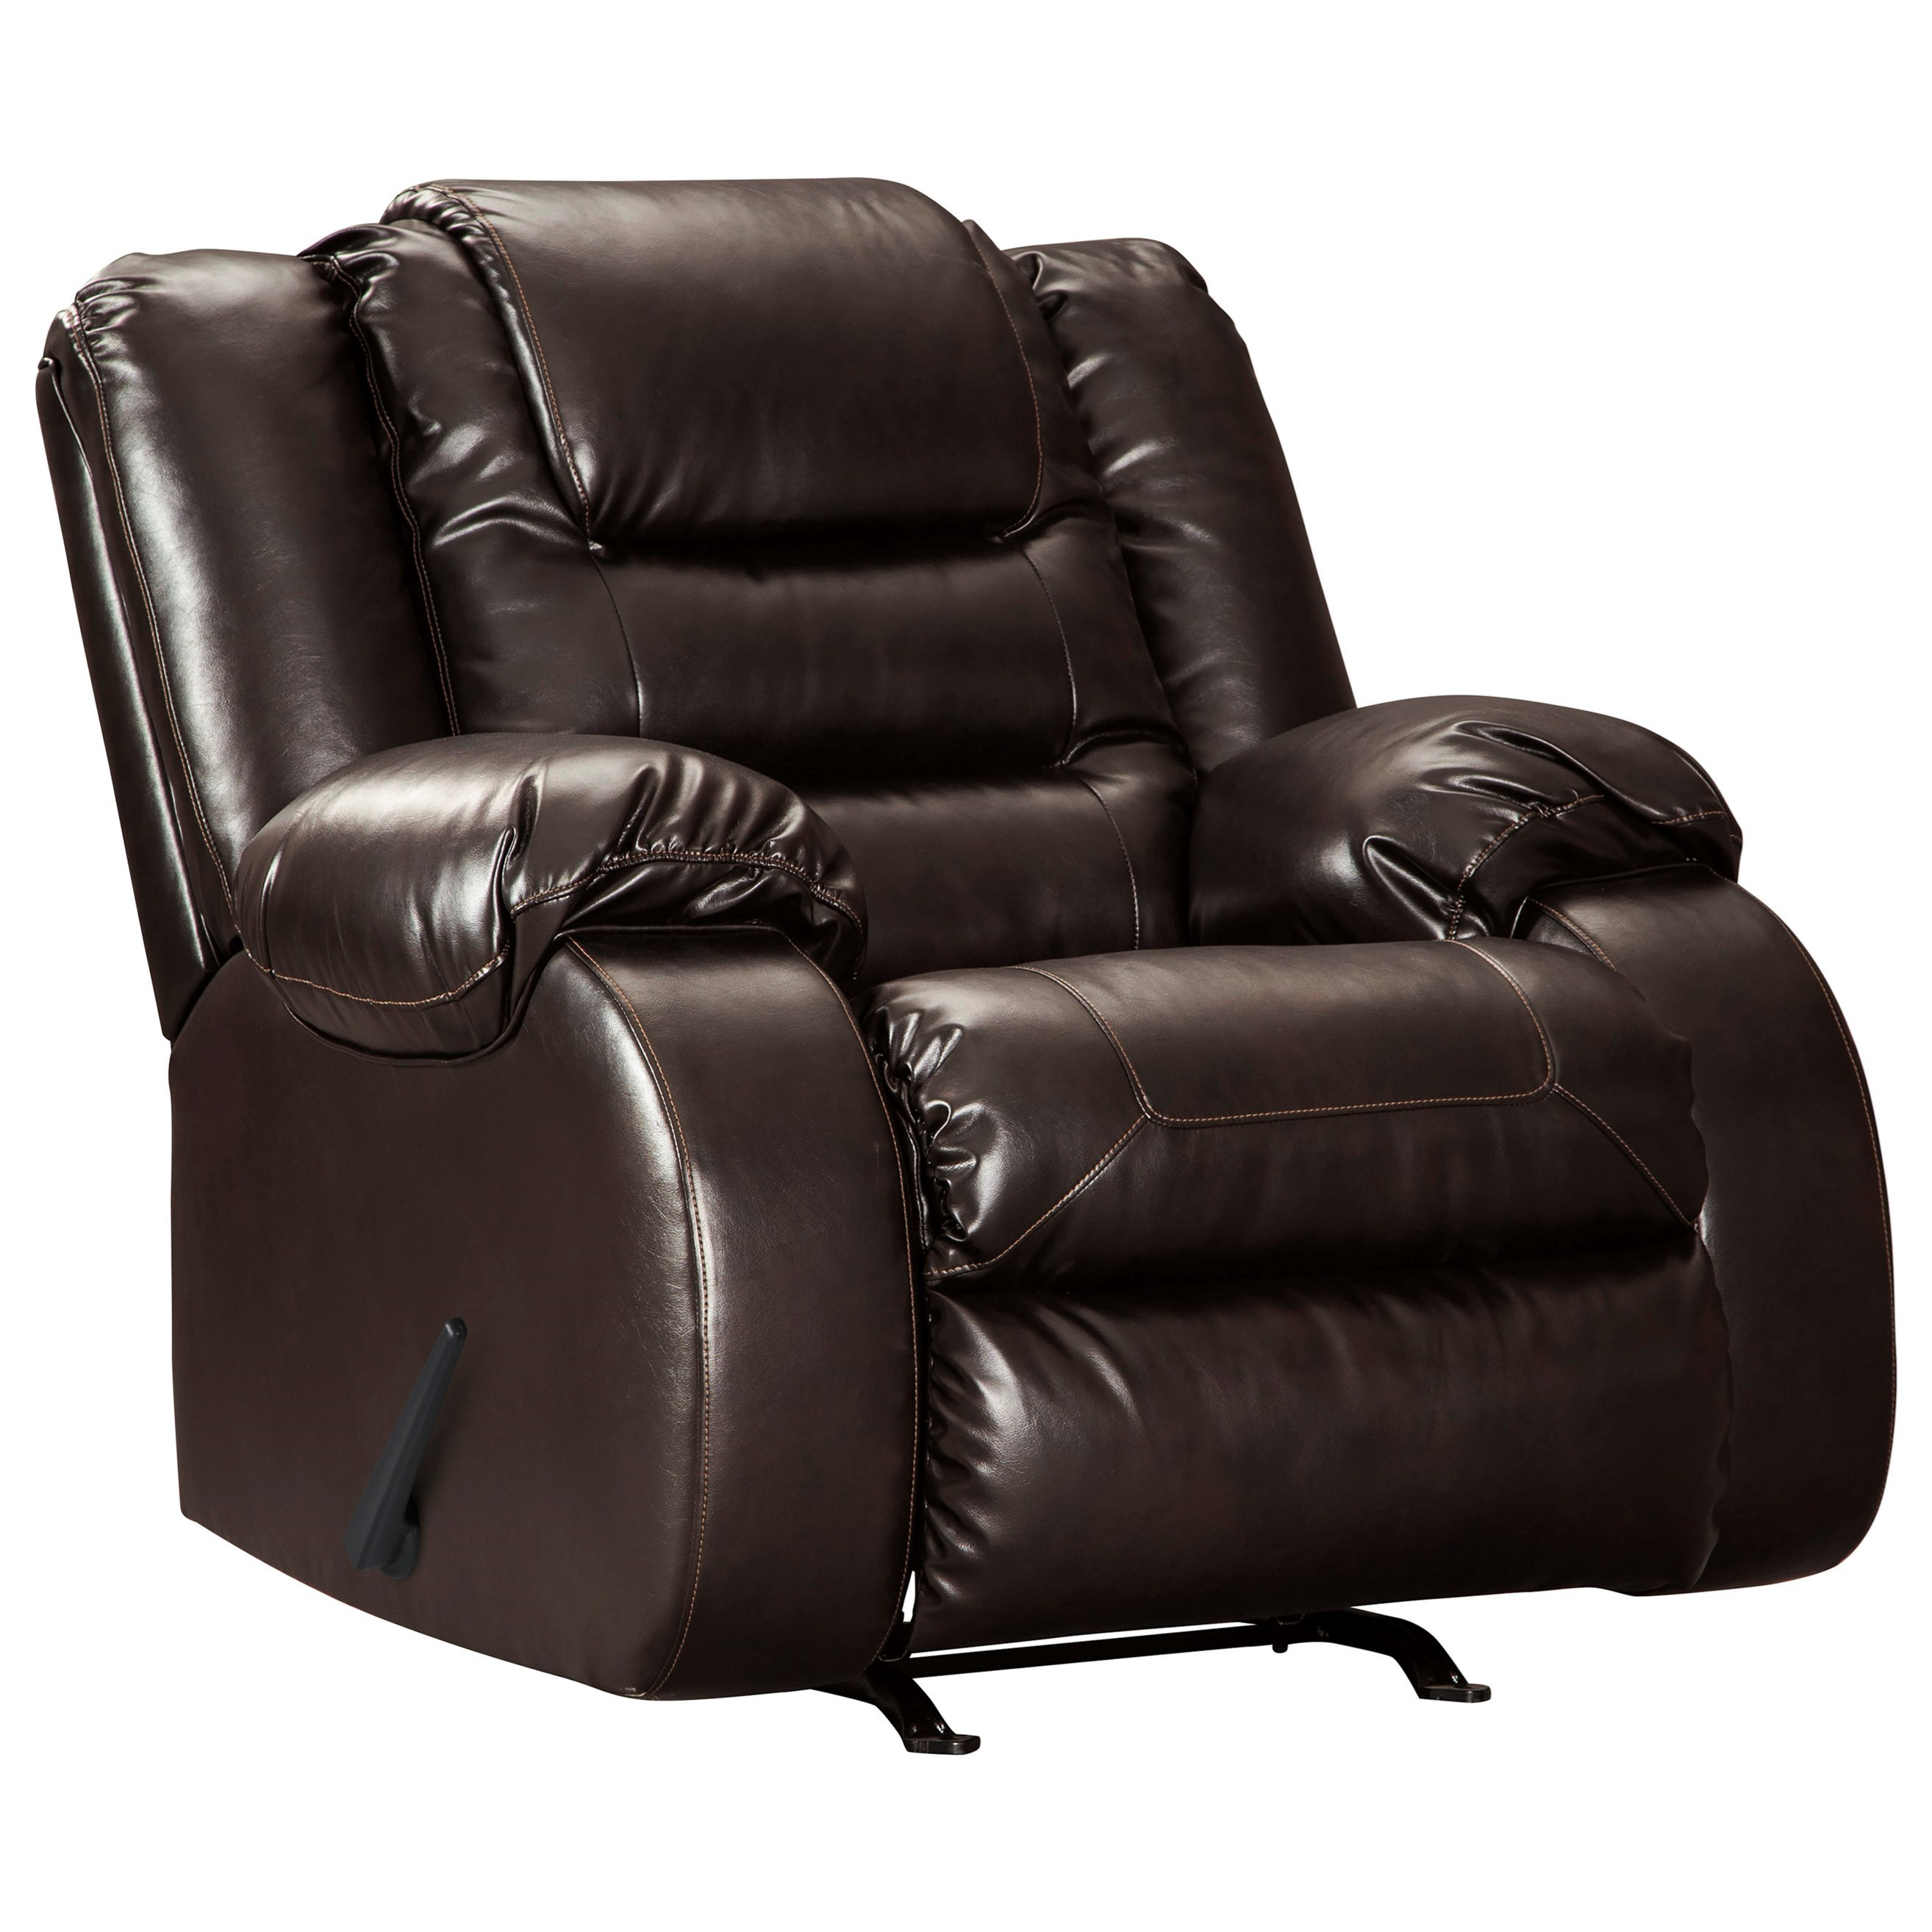 Recliner Pillow Vacherie Casual Rocker Recliner With Infinite Reclining Positions By Signature Design By Ashley At Furniture And Appliancemart